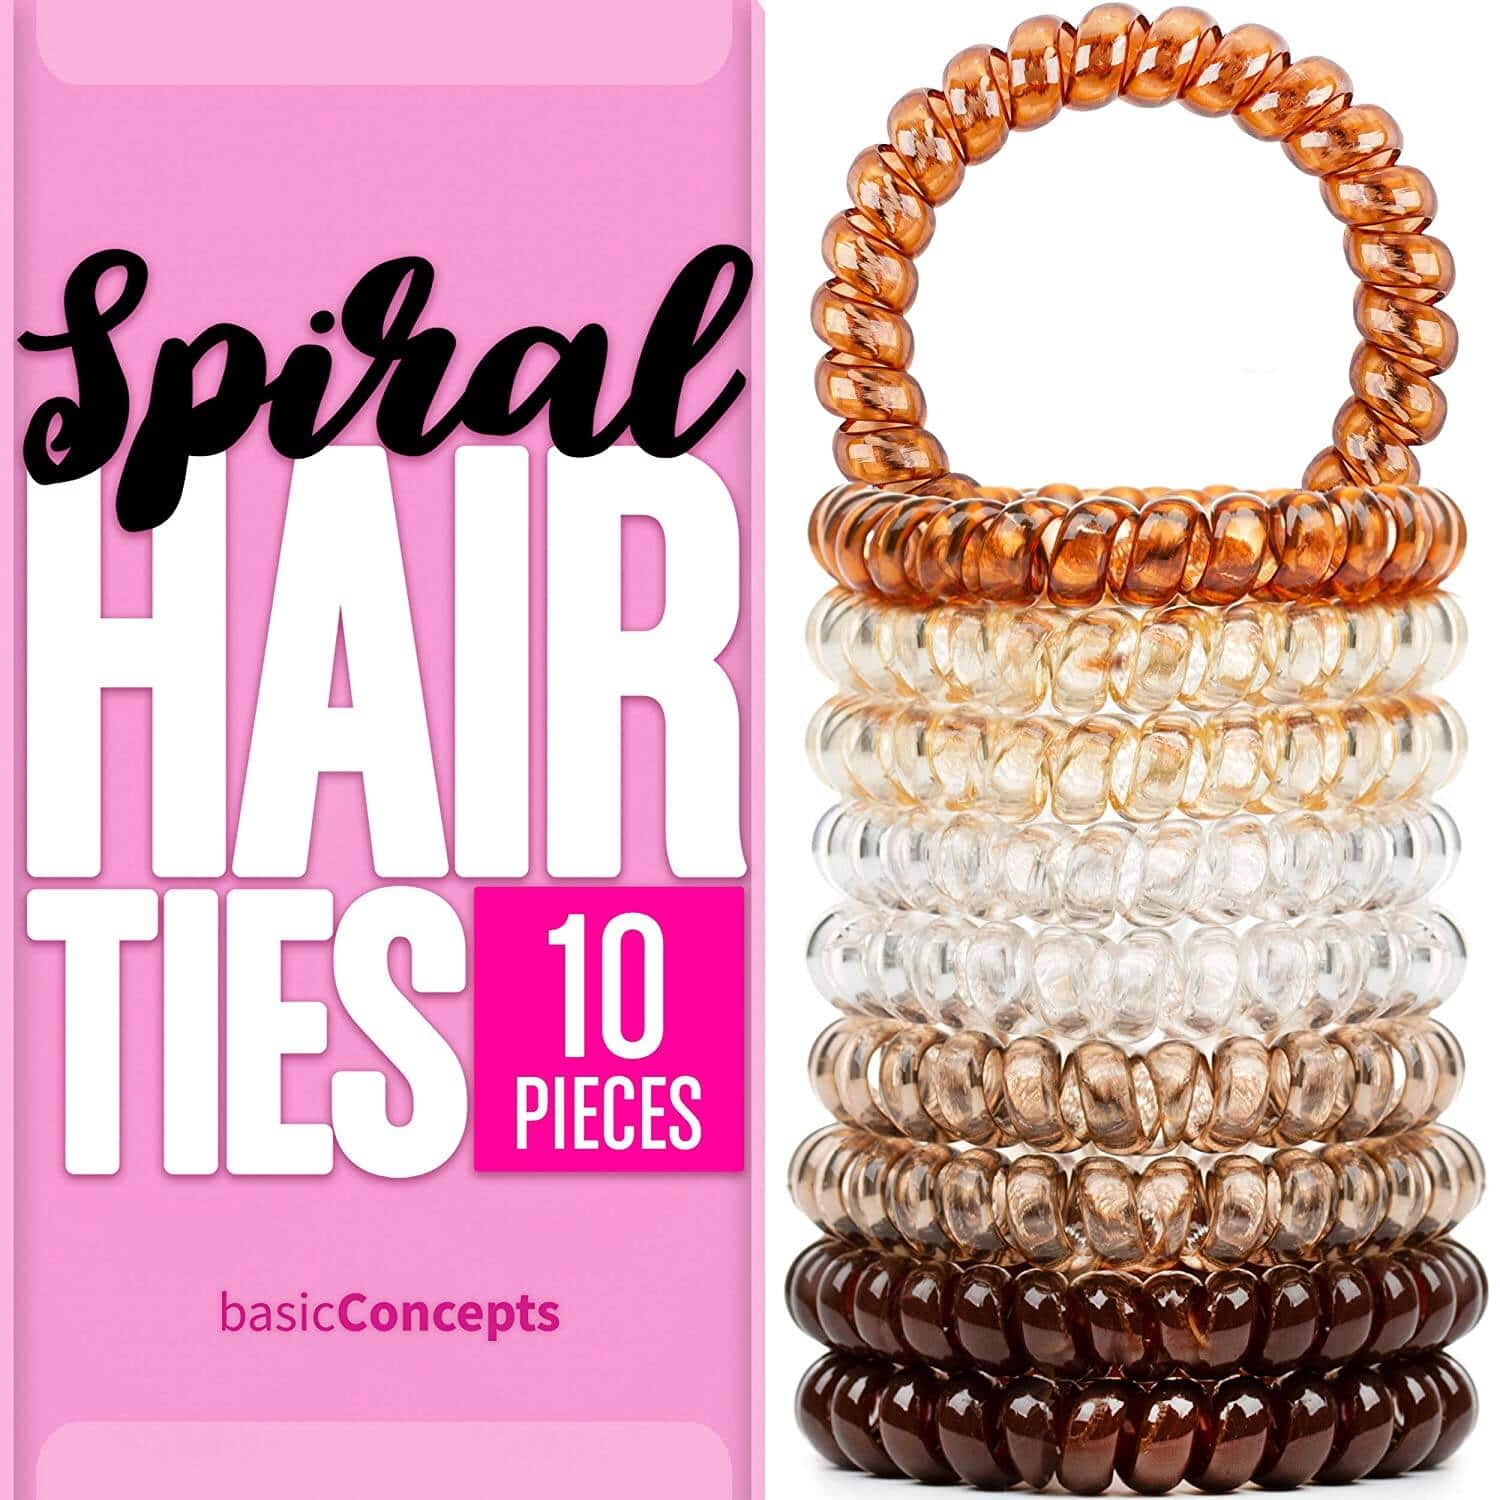 Spiral Hair Ties (10 Pieces), Coil Hair Ties for Thick Hair, Ponytail Holder Hair Ties for Women (Assorted Colors) $4.97 + FS w/ Prime or Orders $25+